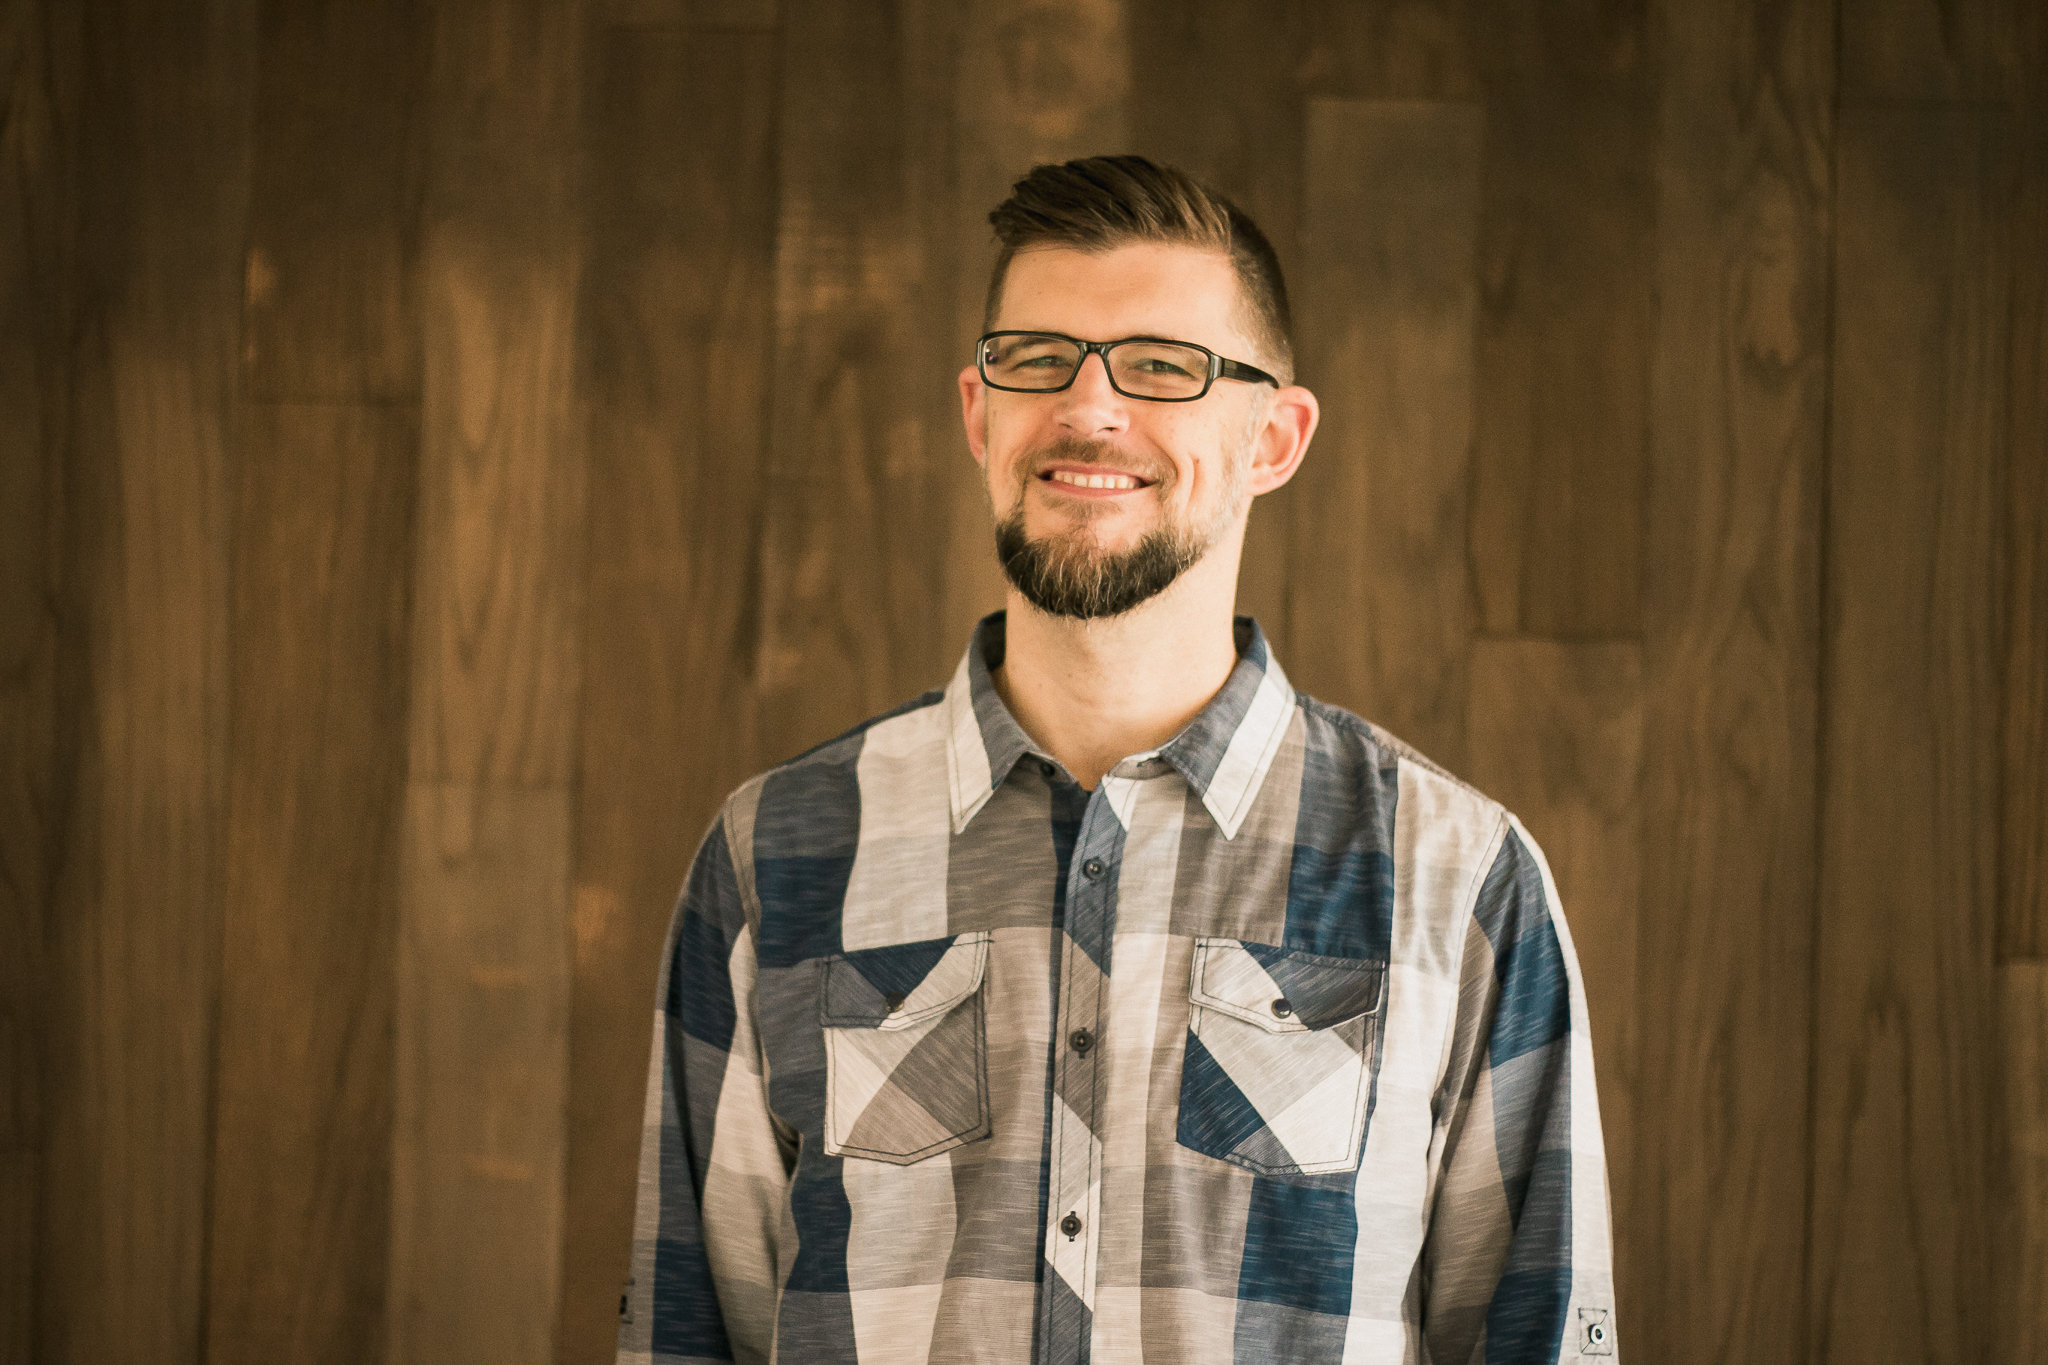 Executive Pastor Drew Caperton has served with Hulen Street Church since 2011.